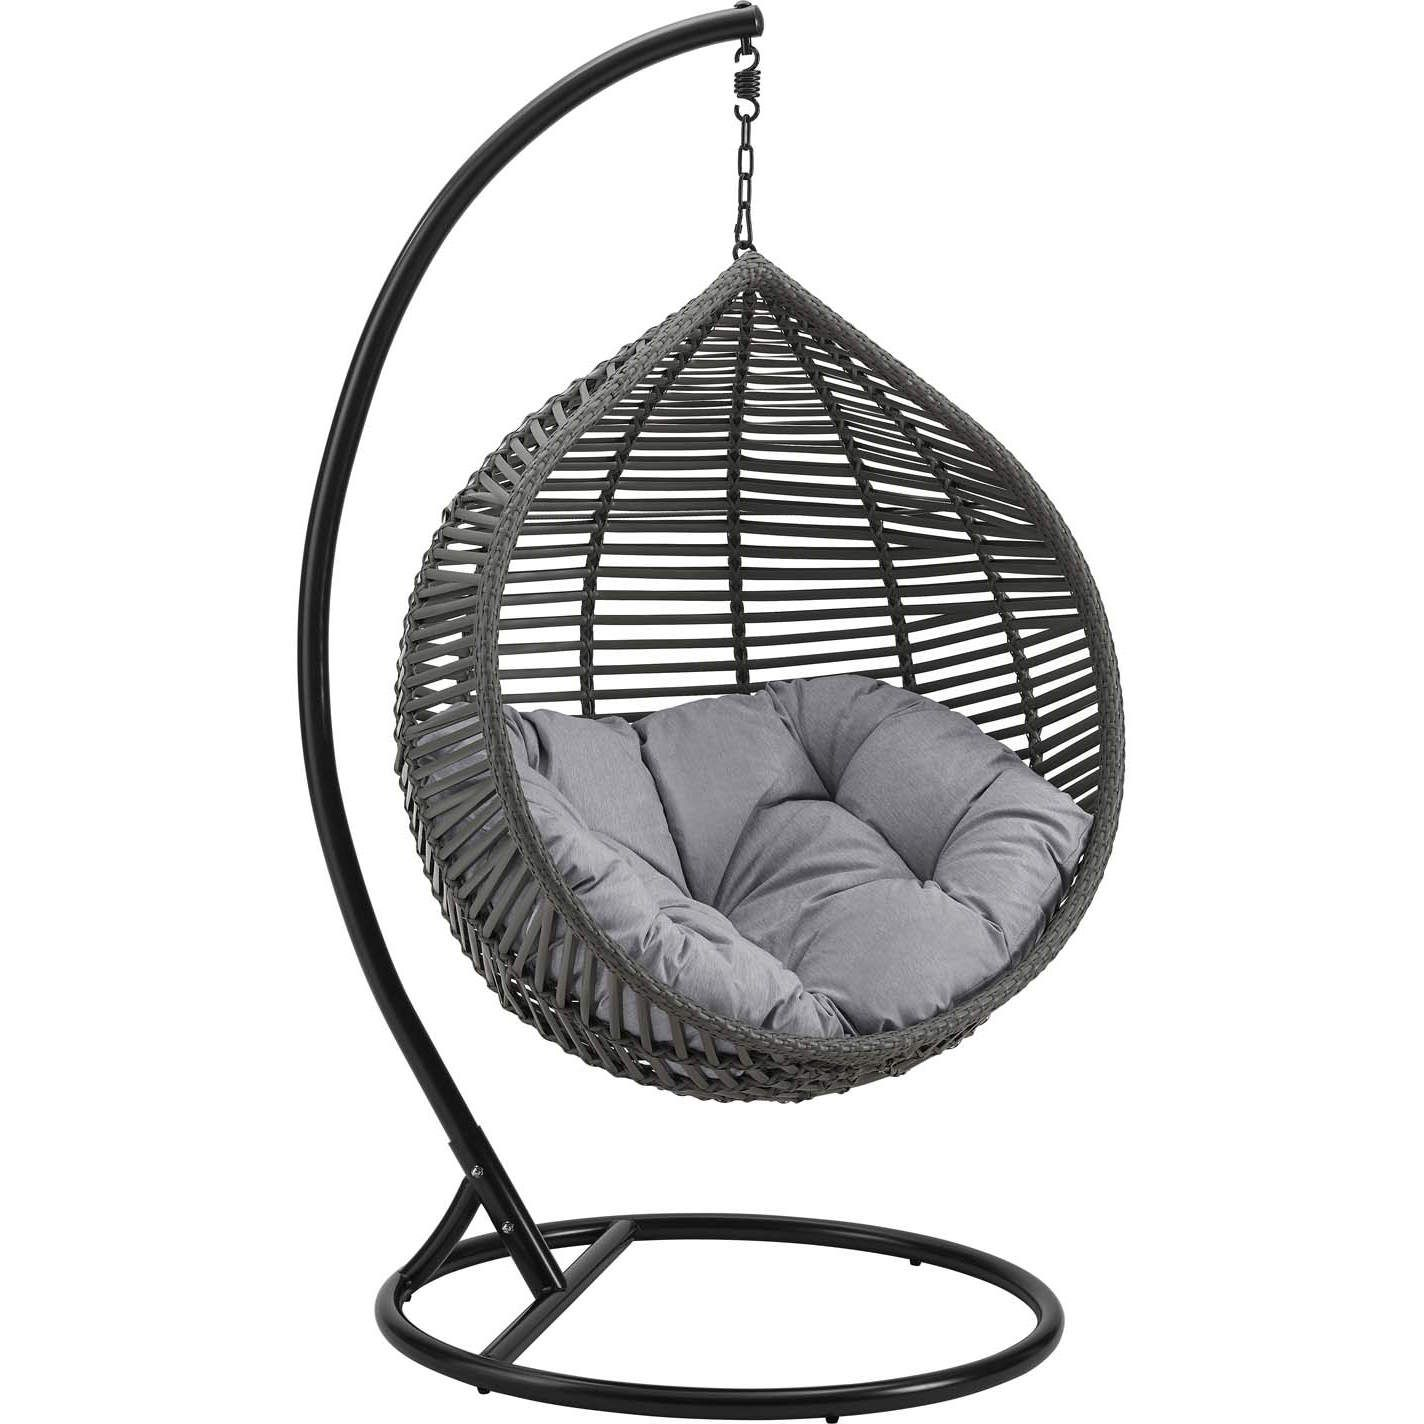 Modway Eei 3614 Gry Gry Garner Teardrop Outdoor Swing Chair Pe Rattan Gray Fabric In 2020 Swinging Chair Swing Chair Outdoor Hanging Swing Chair